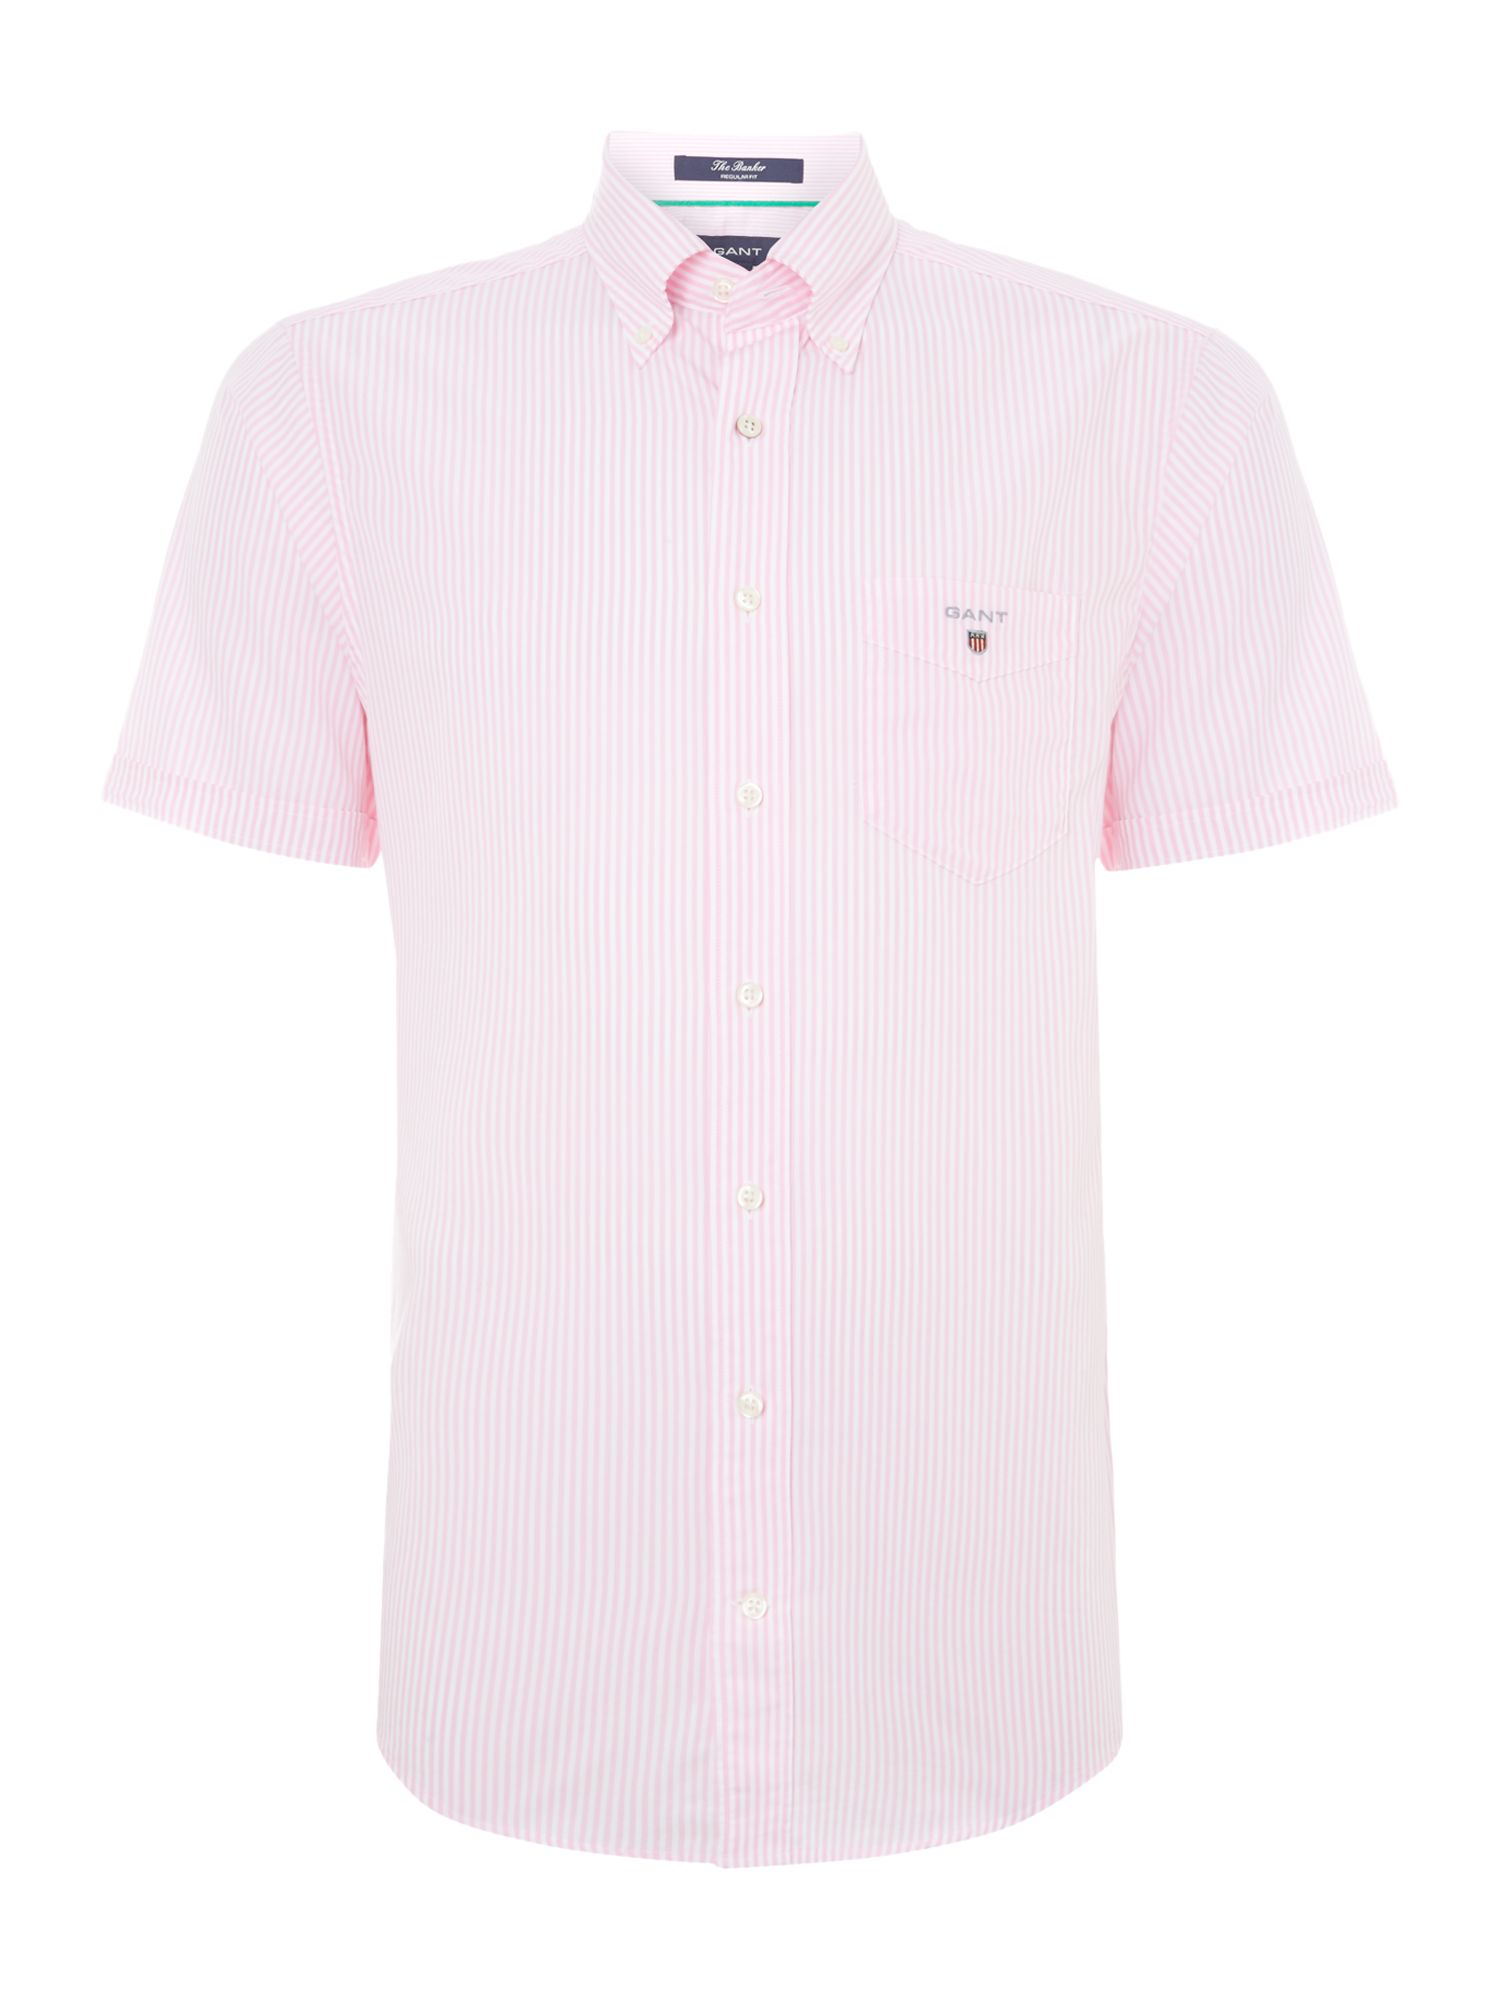 Short sleeve banker shirt